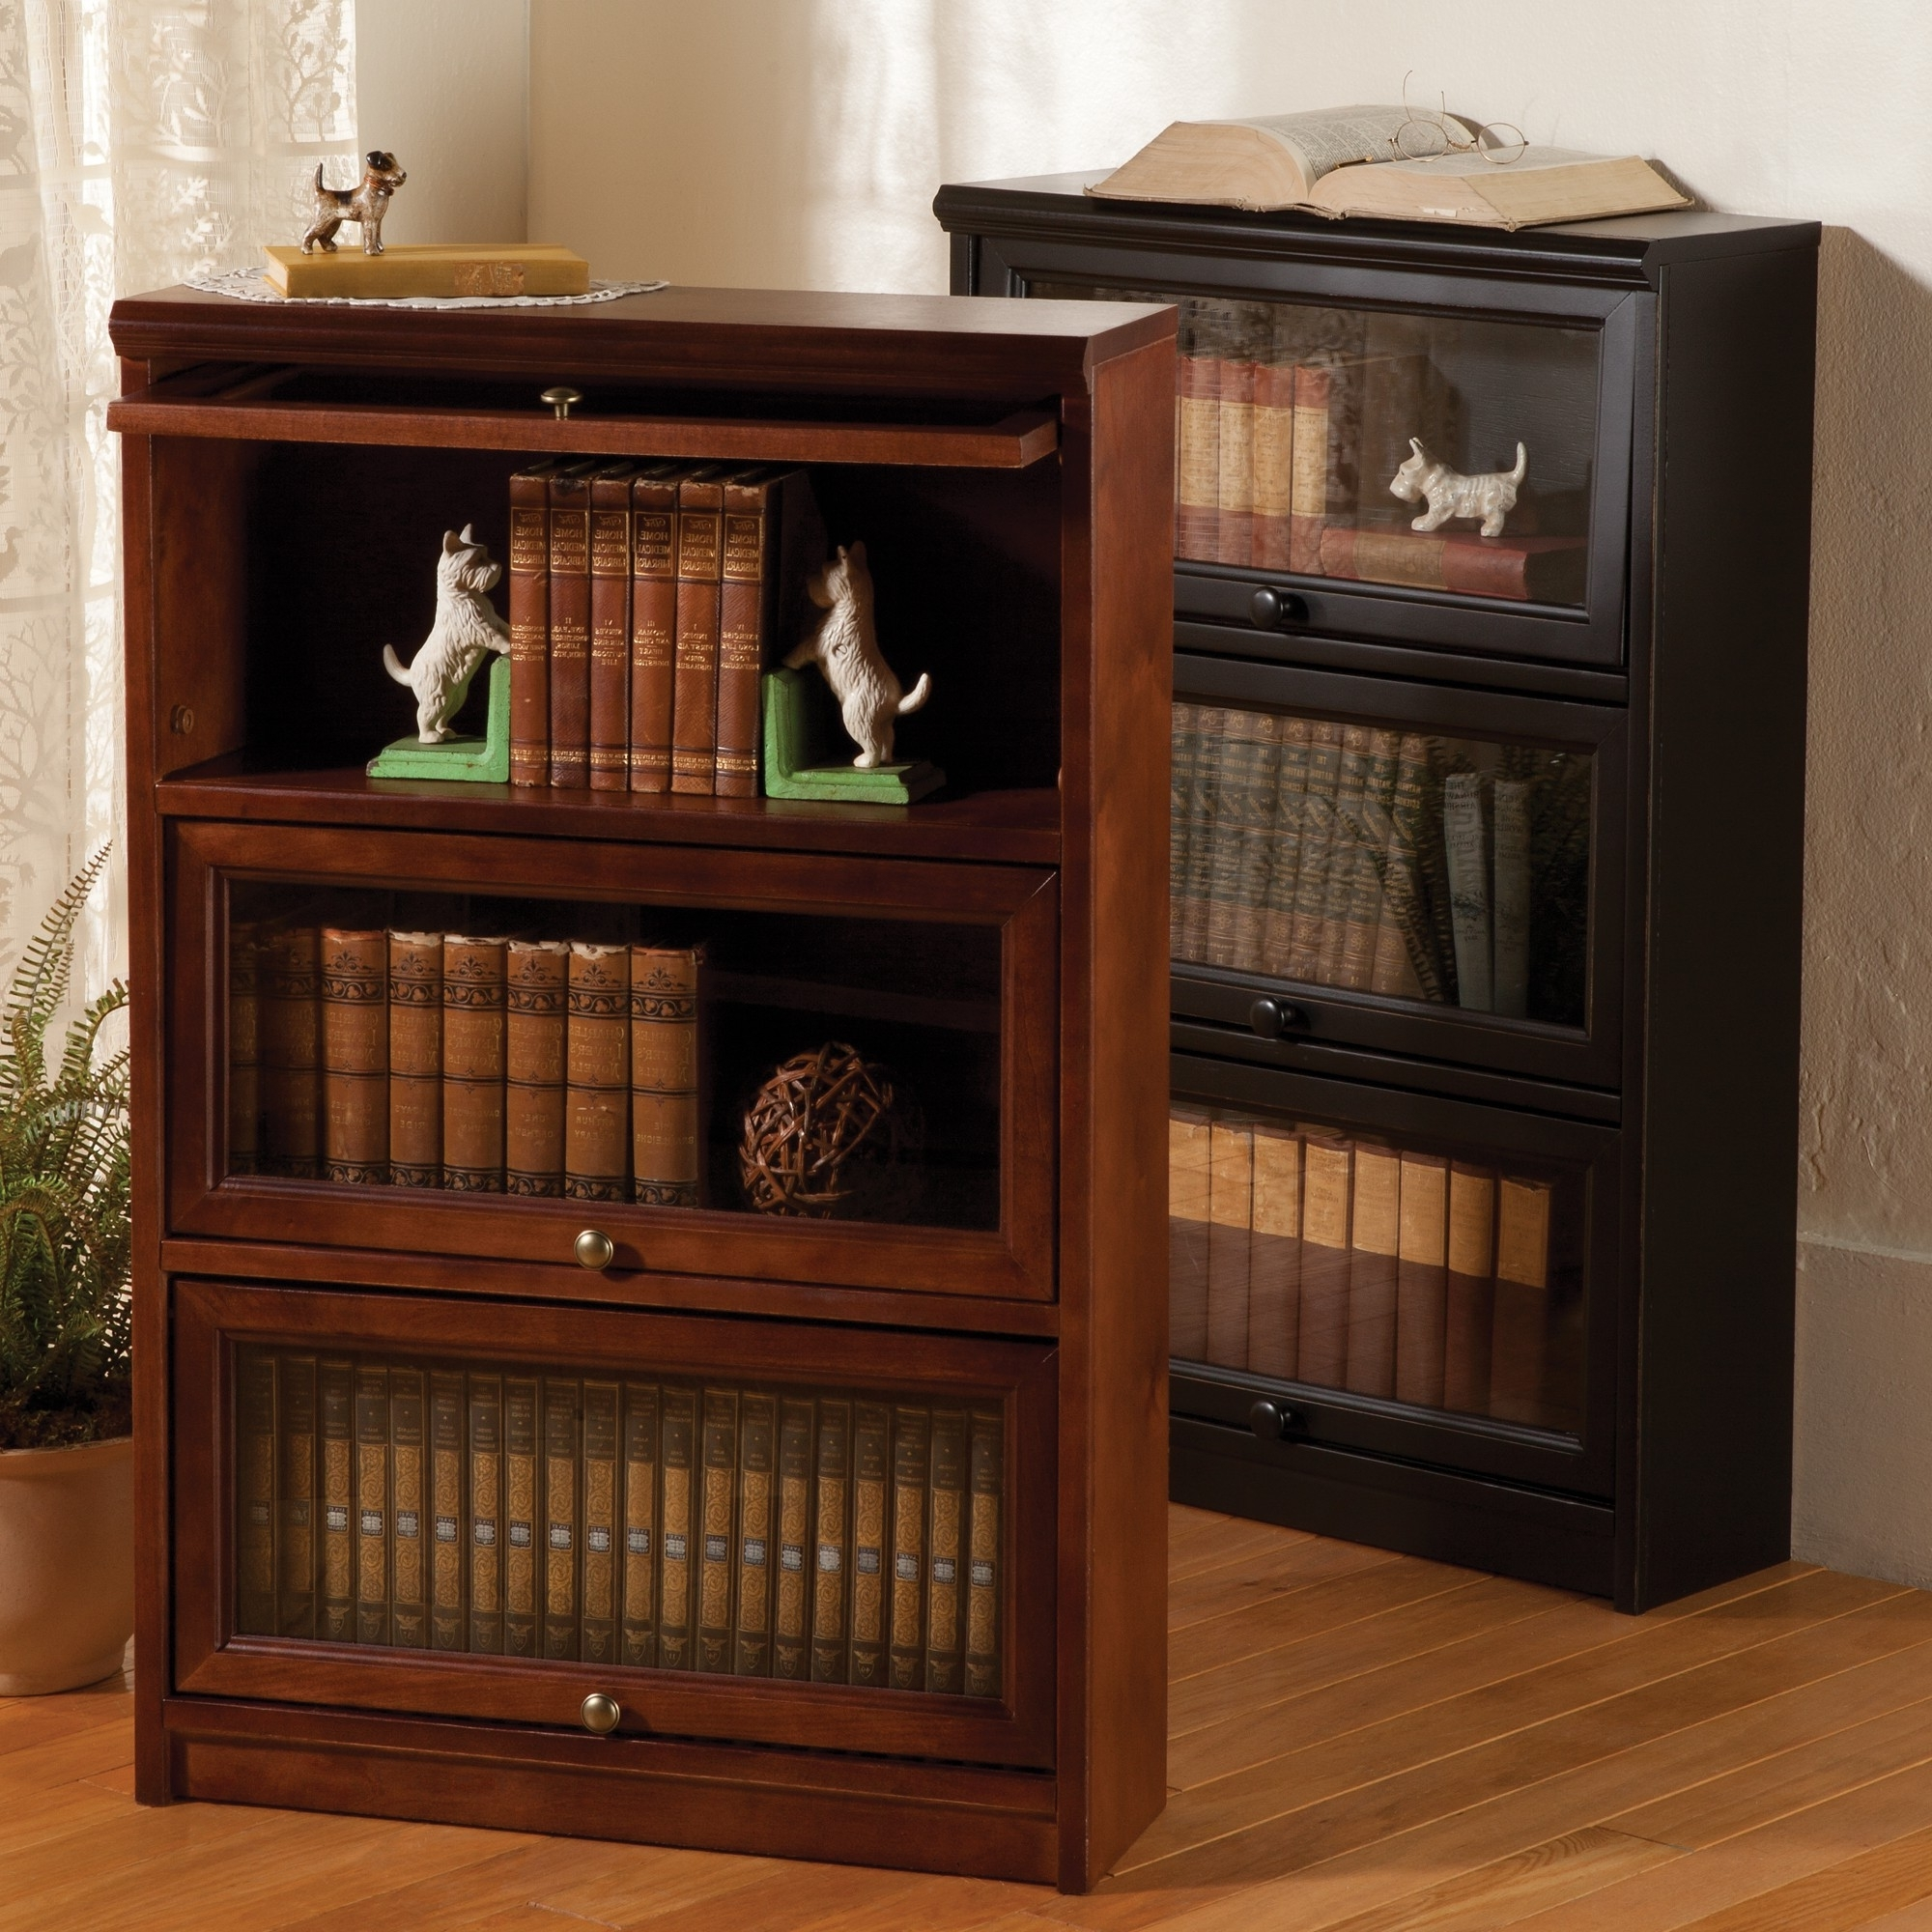 Well Liked Barrister Bookcases For Elegant Wood Barrister Bookcases Wood Bookcases Ideas – Cover Up (View 12 of 15)